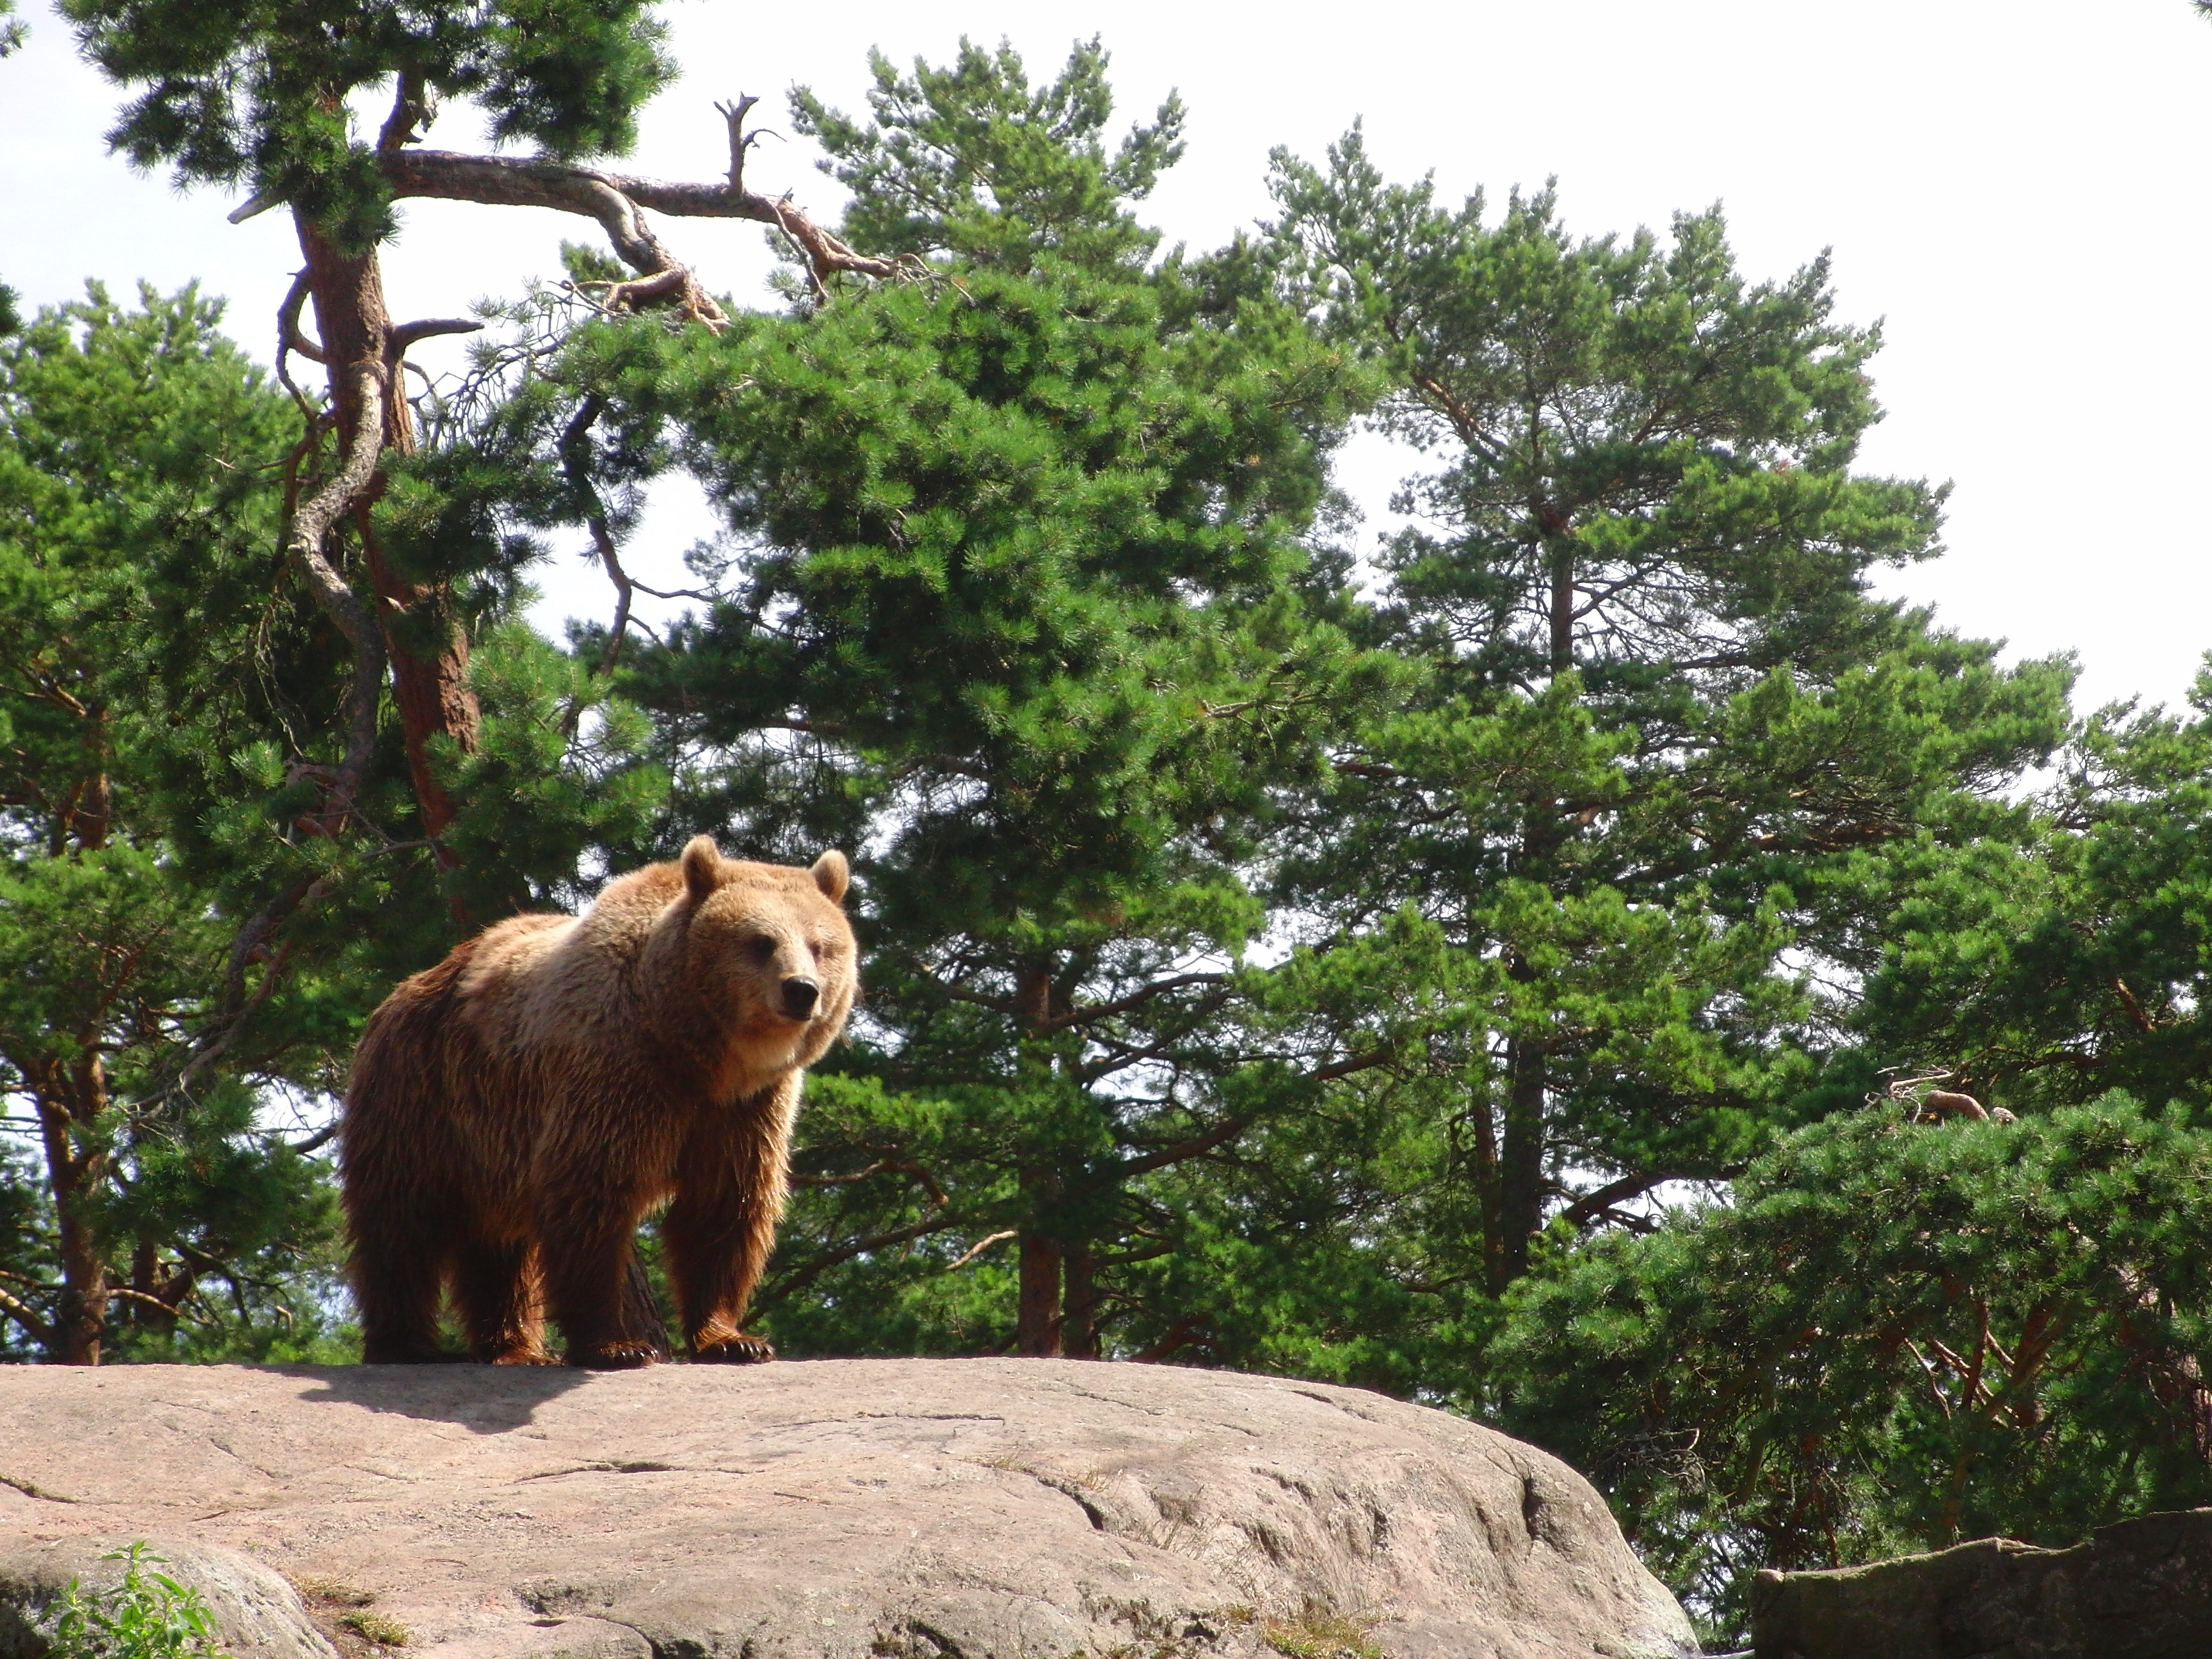 nature sweden Bears zoo HD Wallpaper